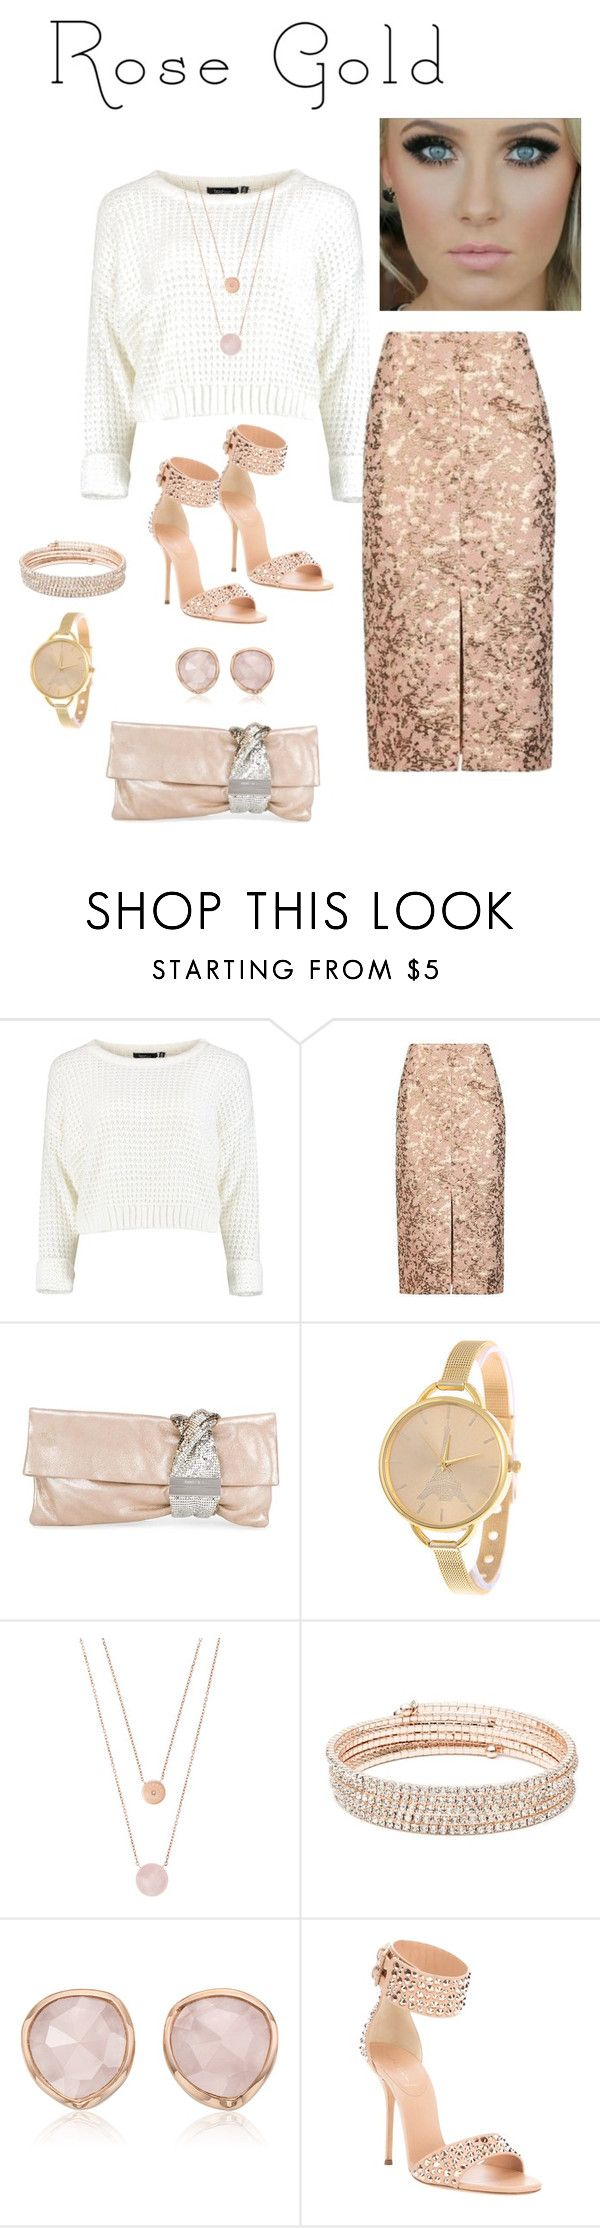 """""""Jóia do ouro de Rosa"""" by daianetavares310 ❤ liked on Polyvore featuring Topshop, Jimmy Choo, Michael Kors, Anne Klein, Monica Vinader, Casadei and rosegold"""